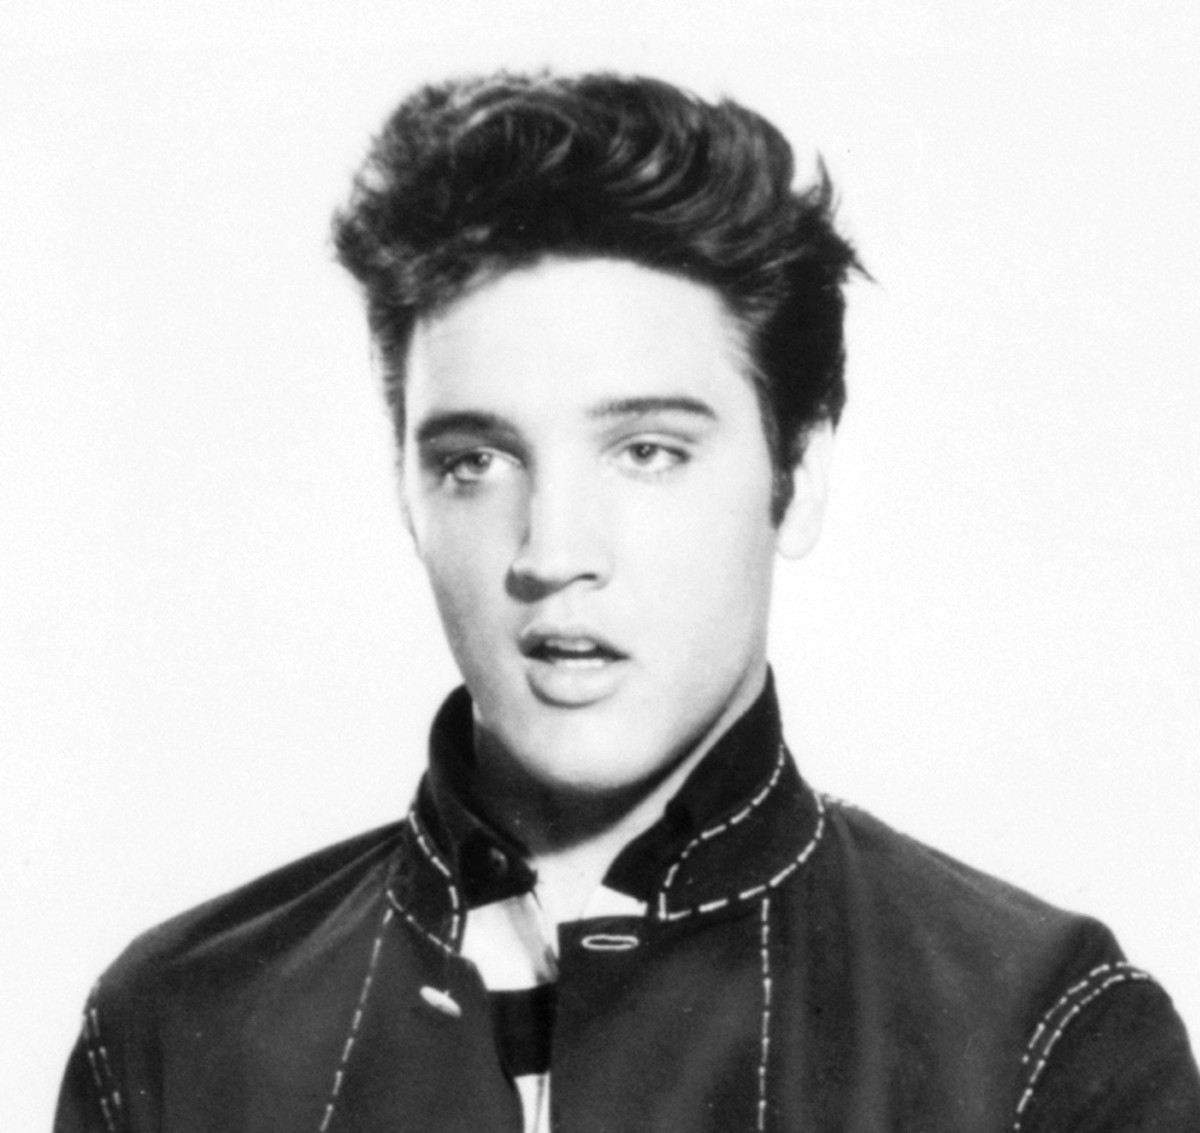 Ten Classic Covers of Elvis Presley's Hit Songs